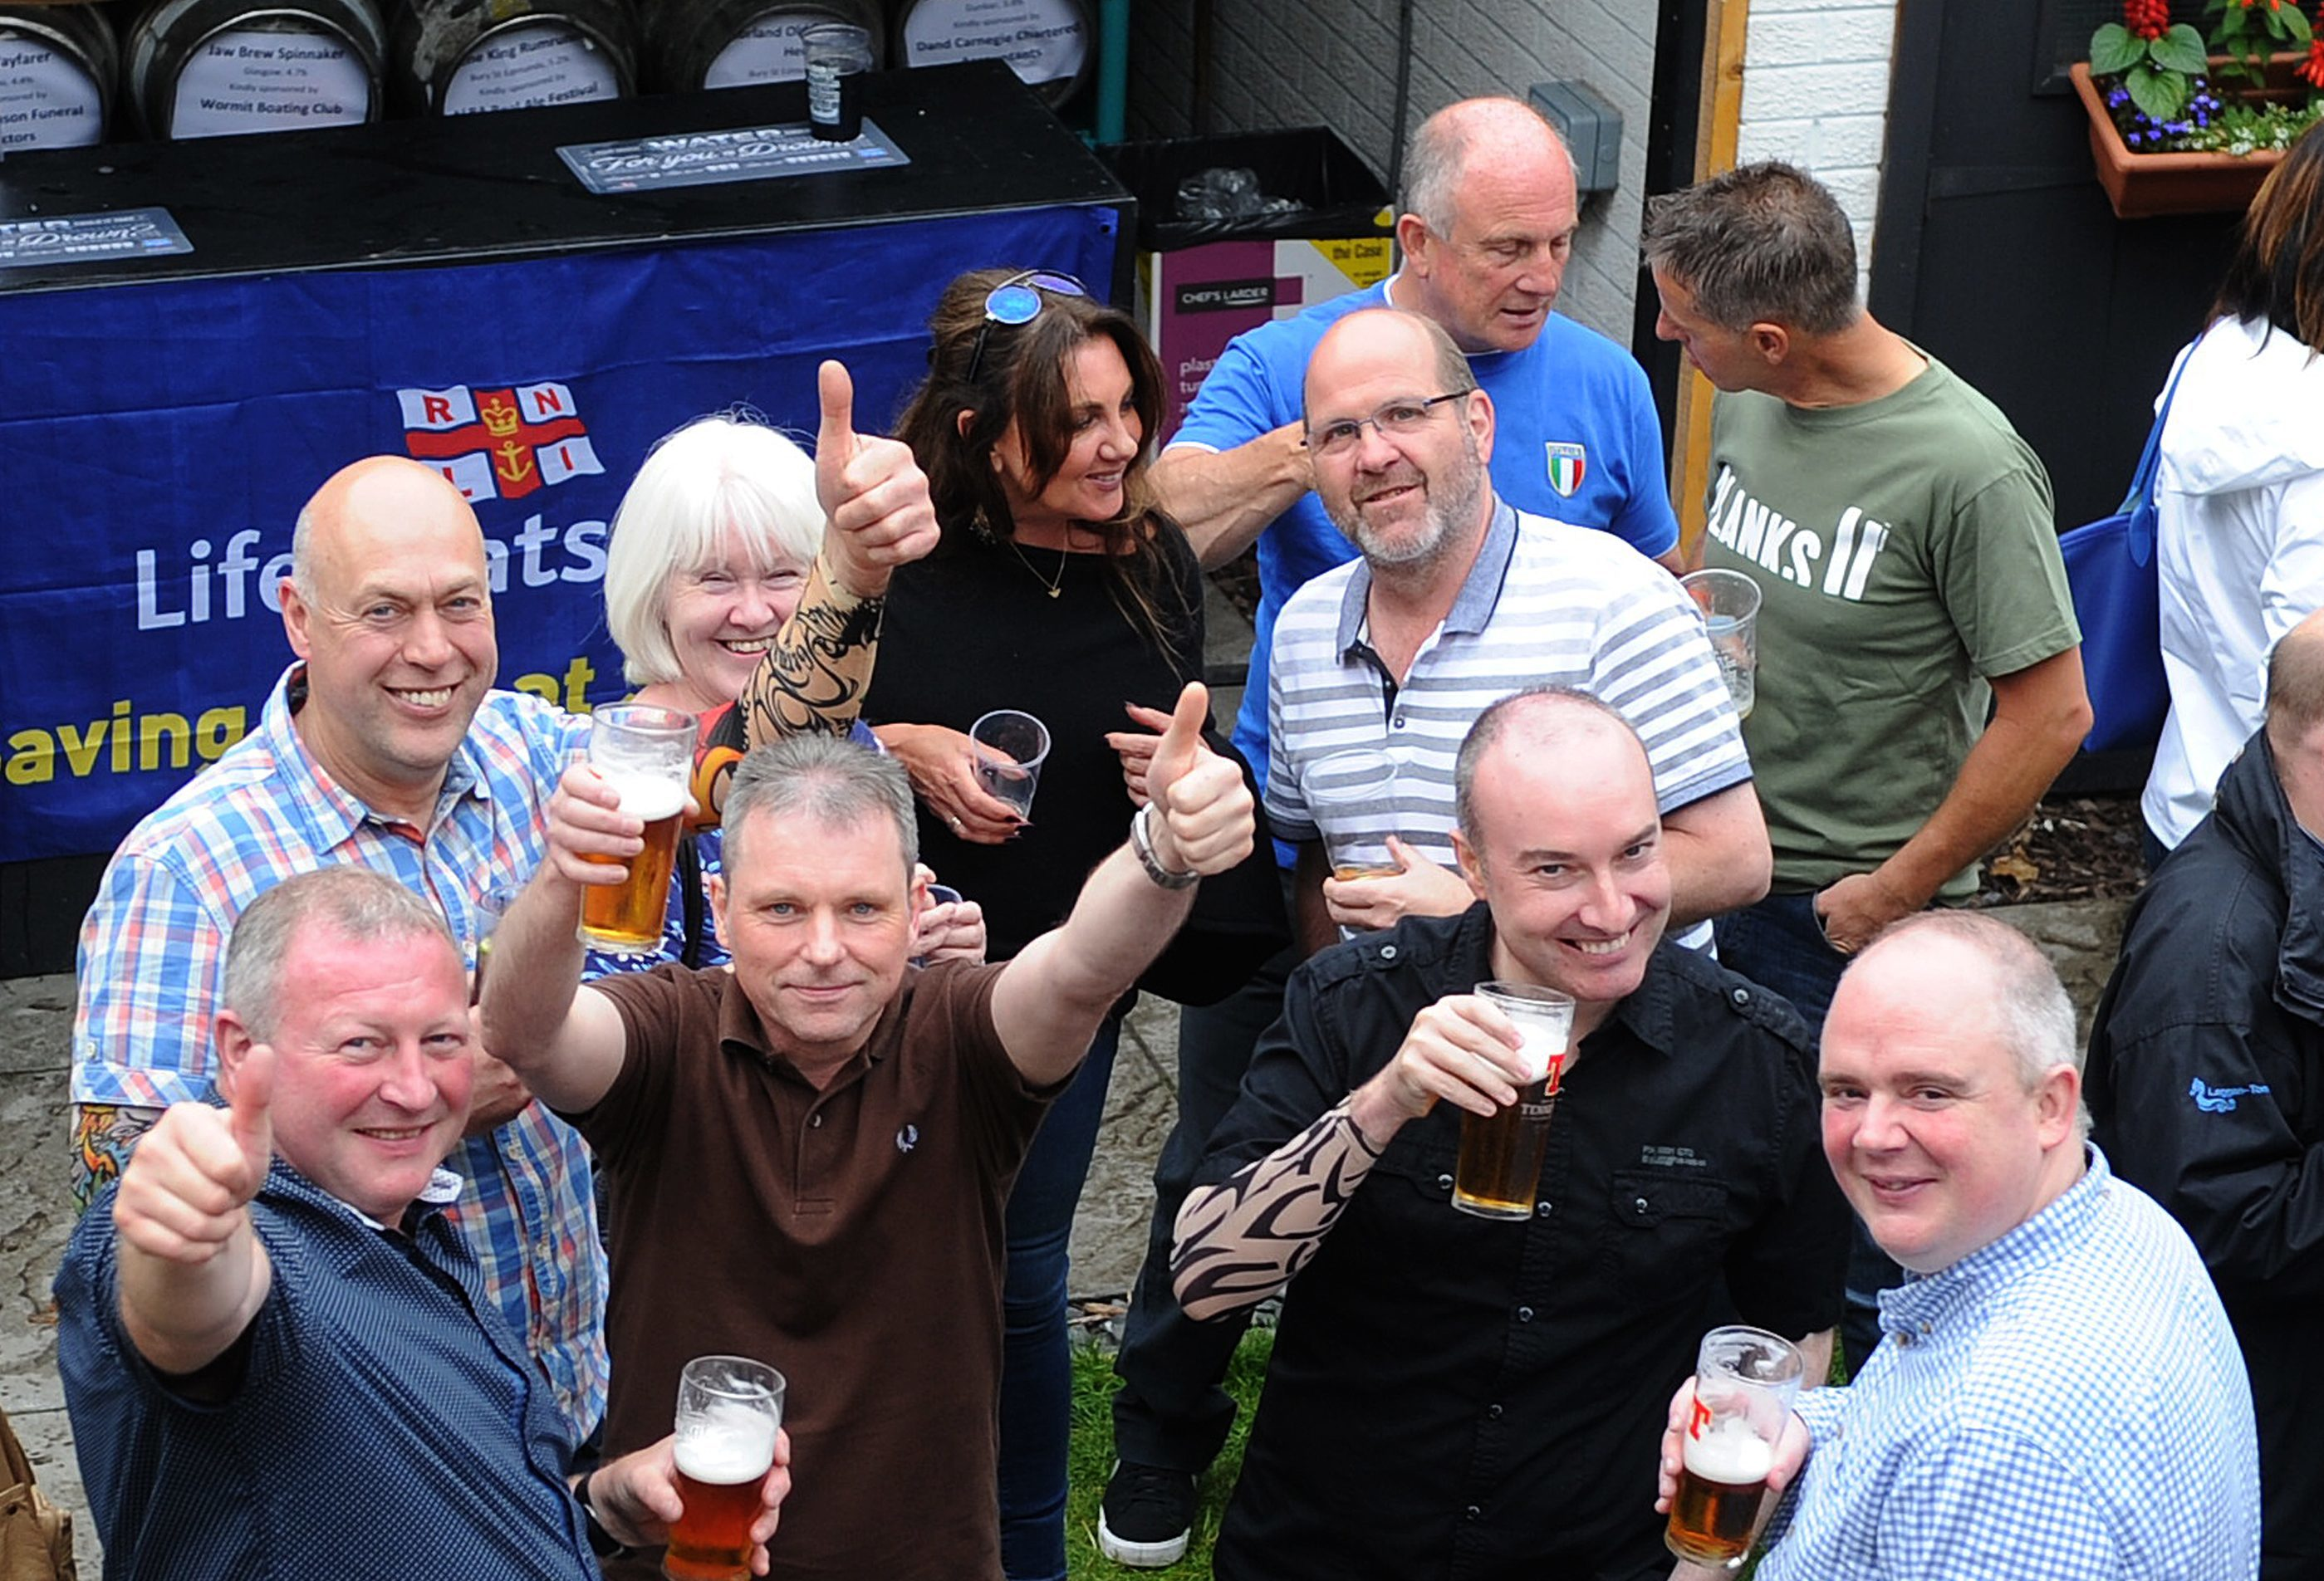 The annual Ron Bonar Beer Festival in the beer garden of the Fishermen's Tavern